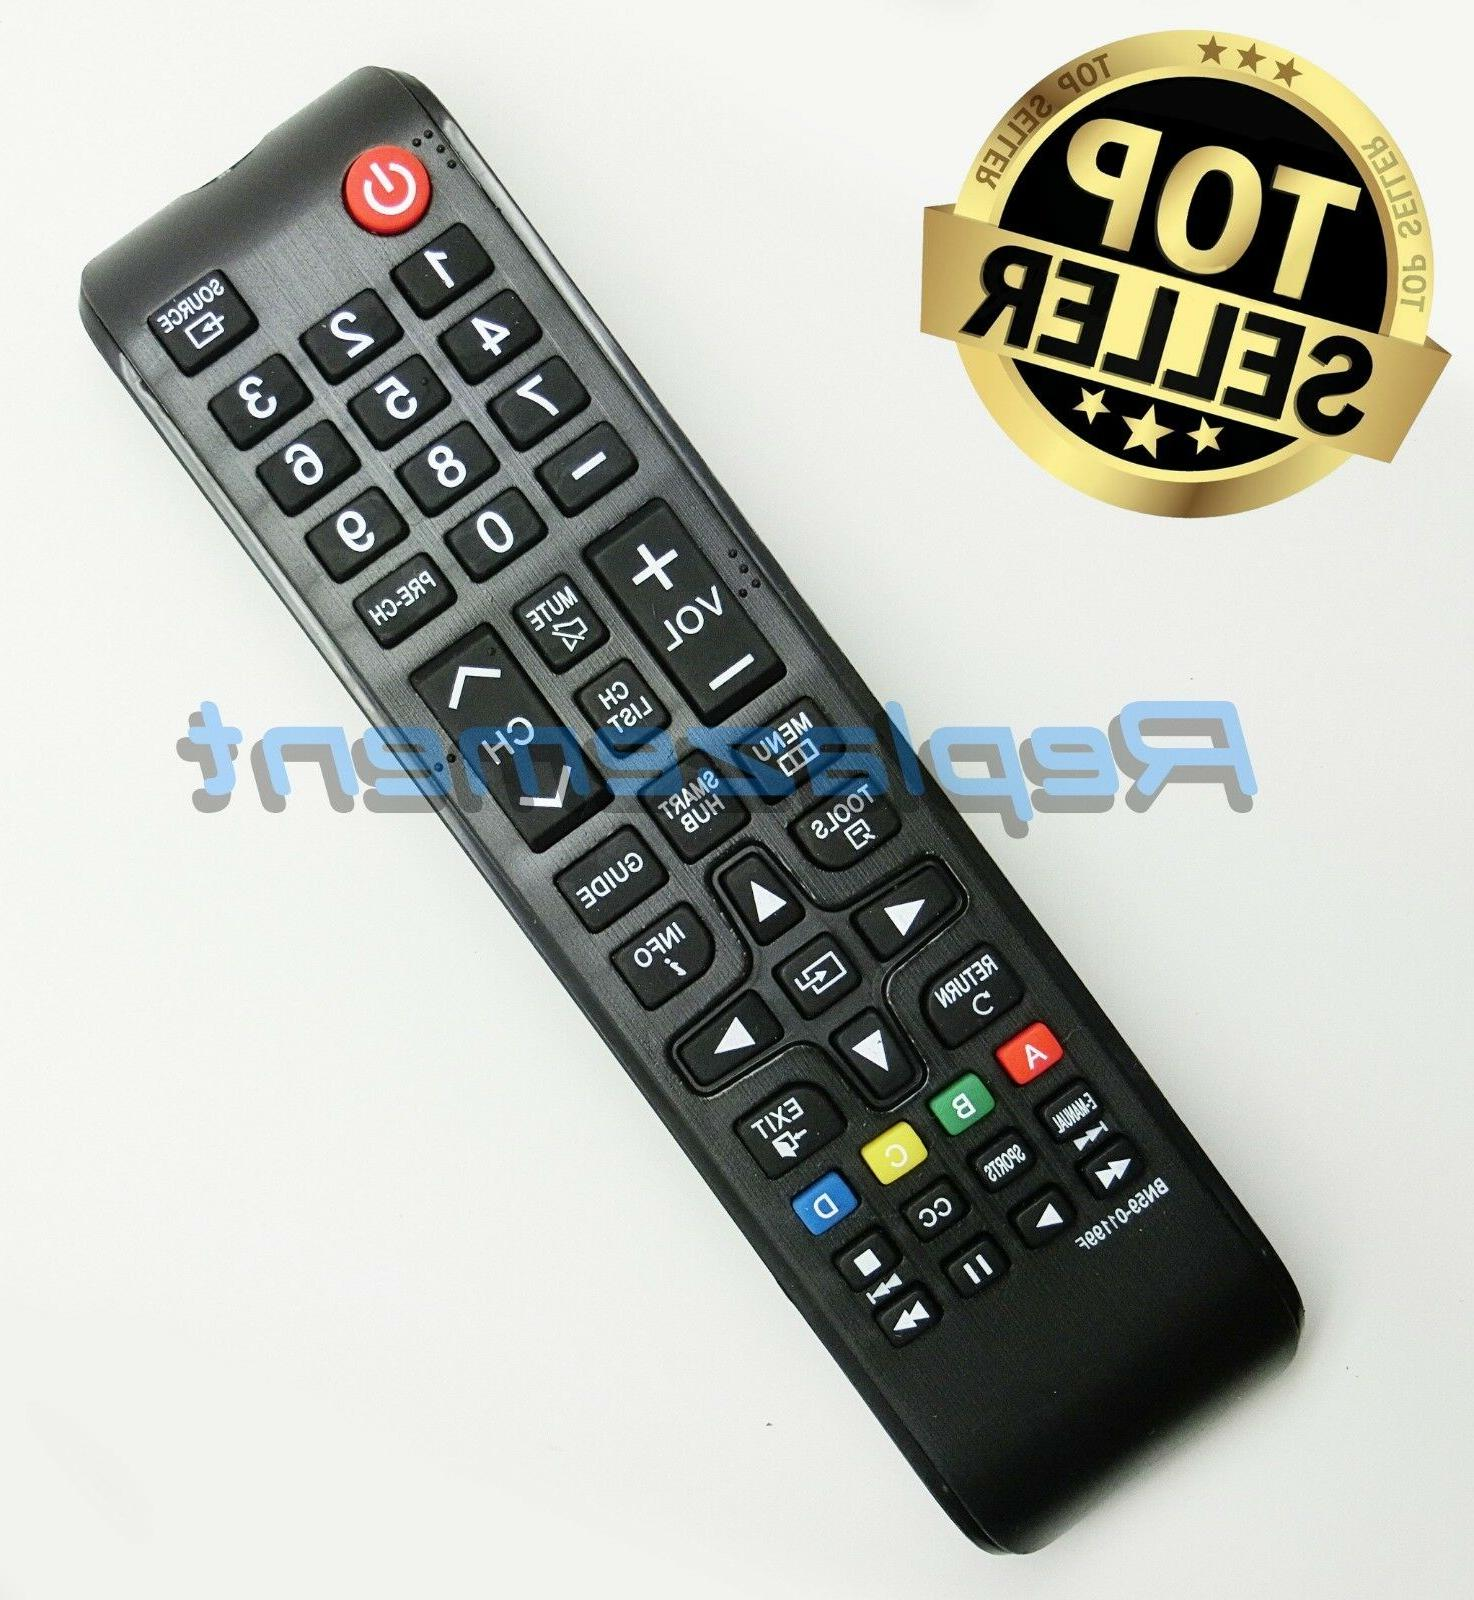 new bn59 01199f bn5901199freplace remote control